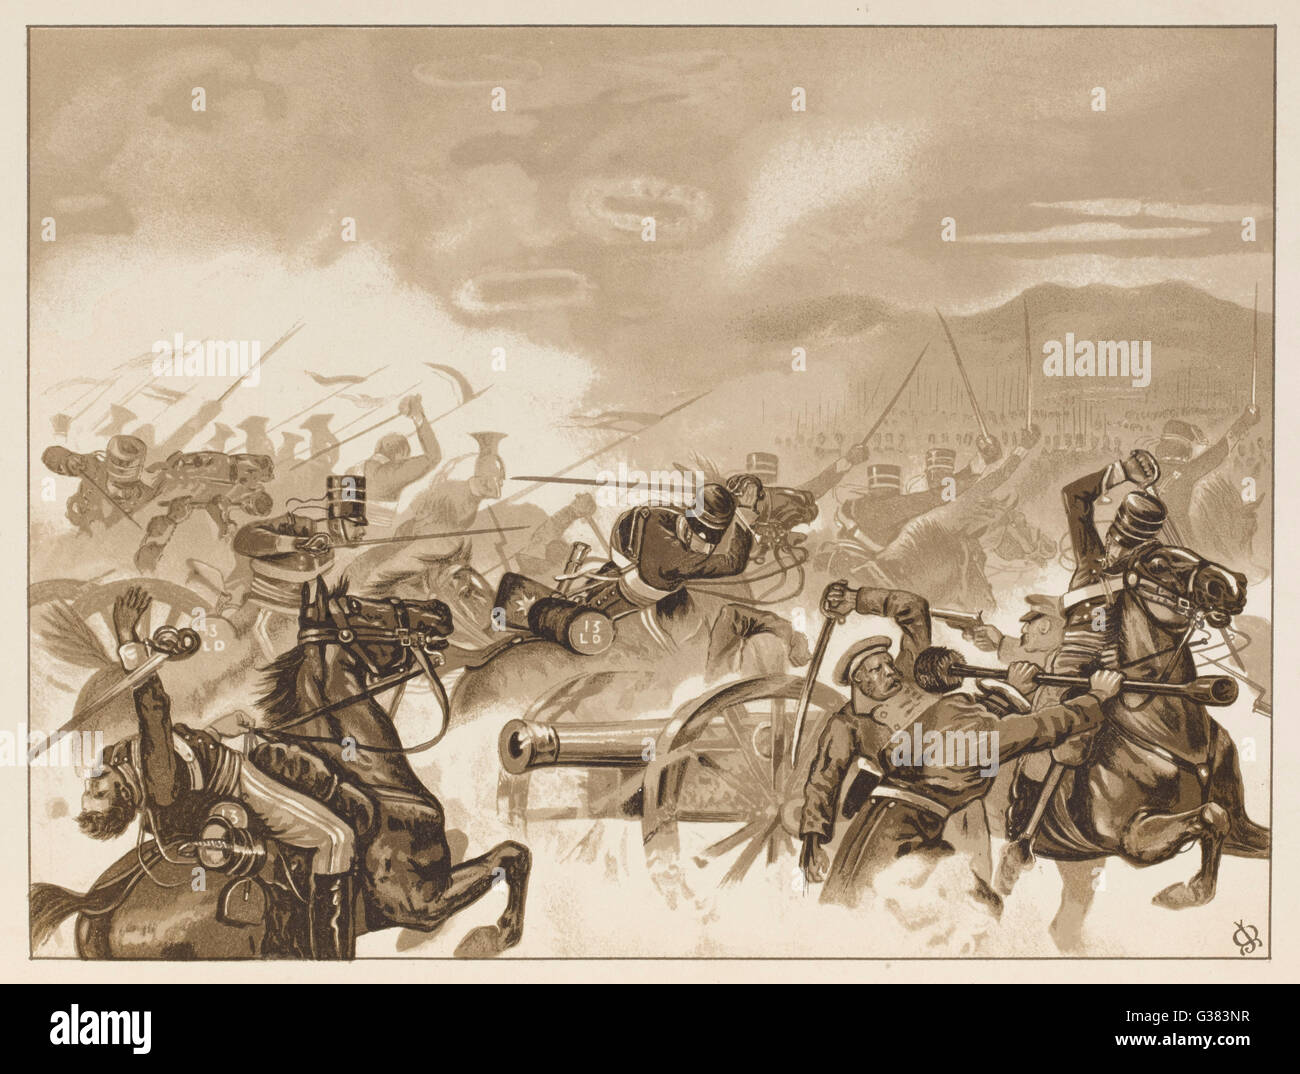 The Charge of the Light  Brigade  - the first line  reaches the Russian guns        Date: 25 October 1854 - Stock Image